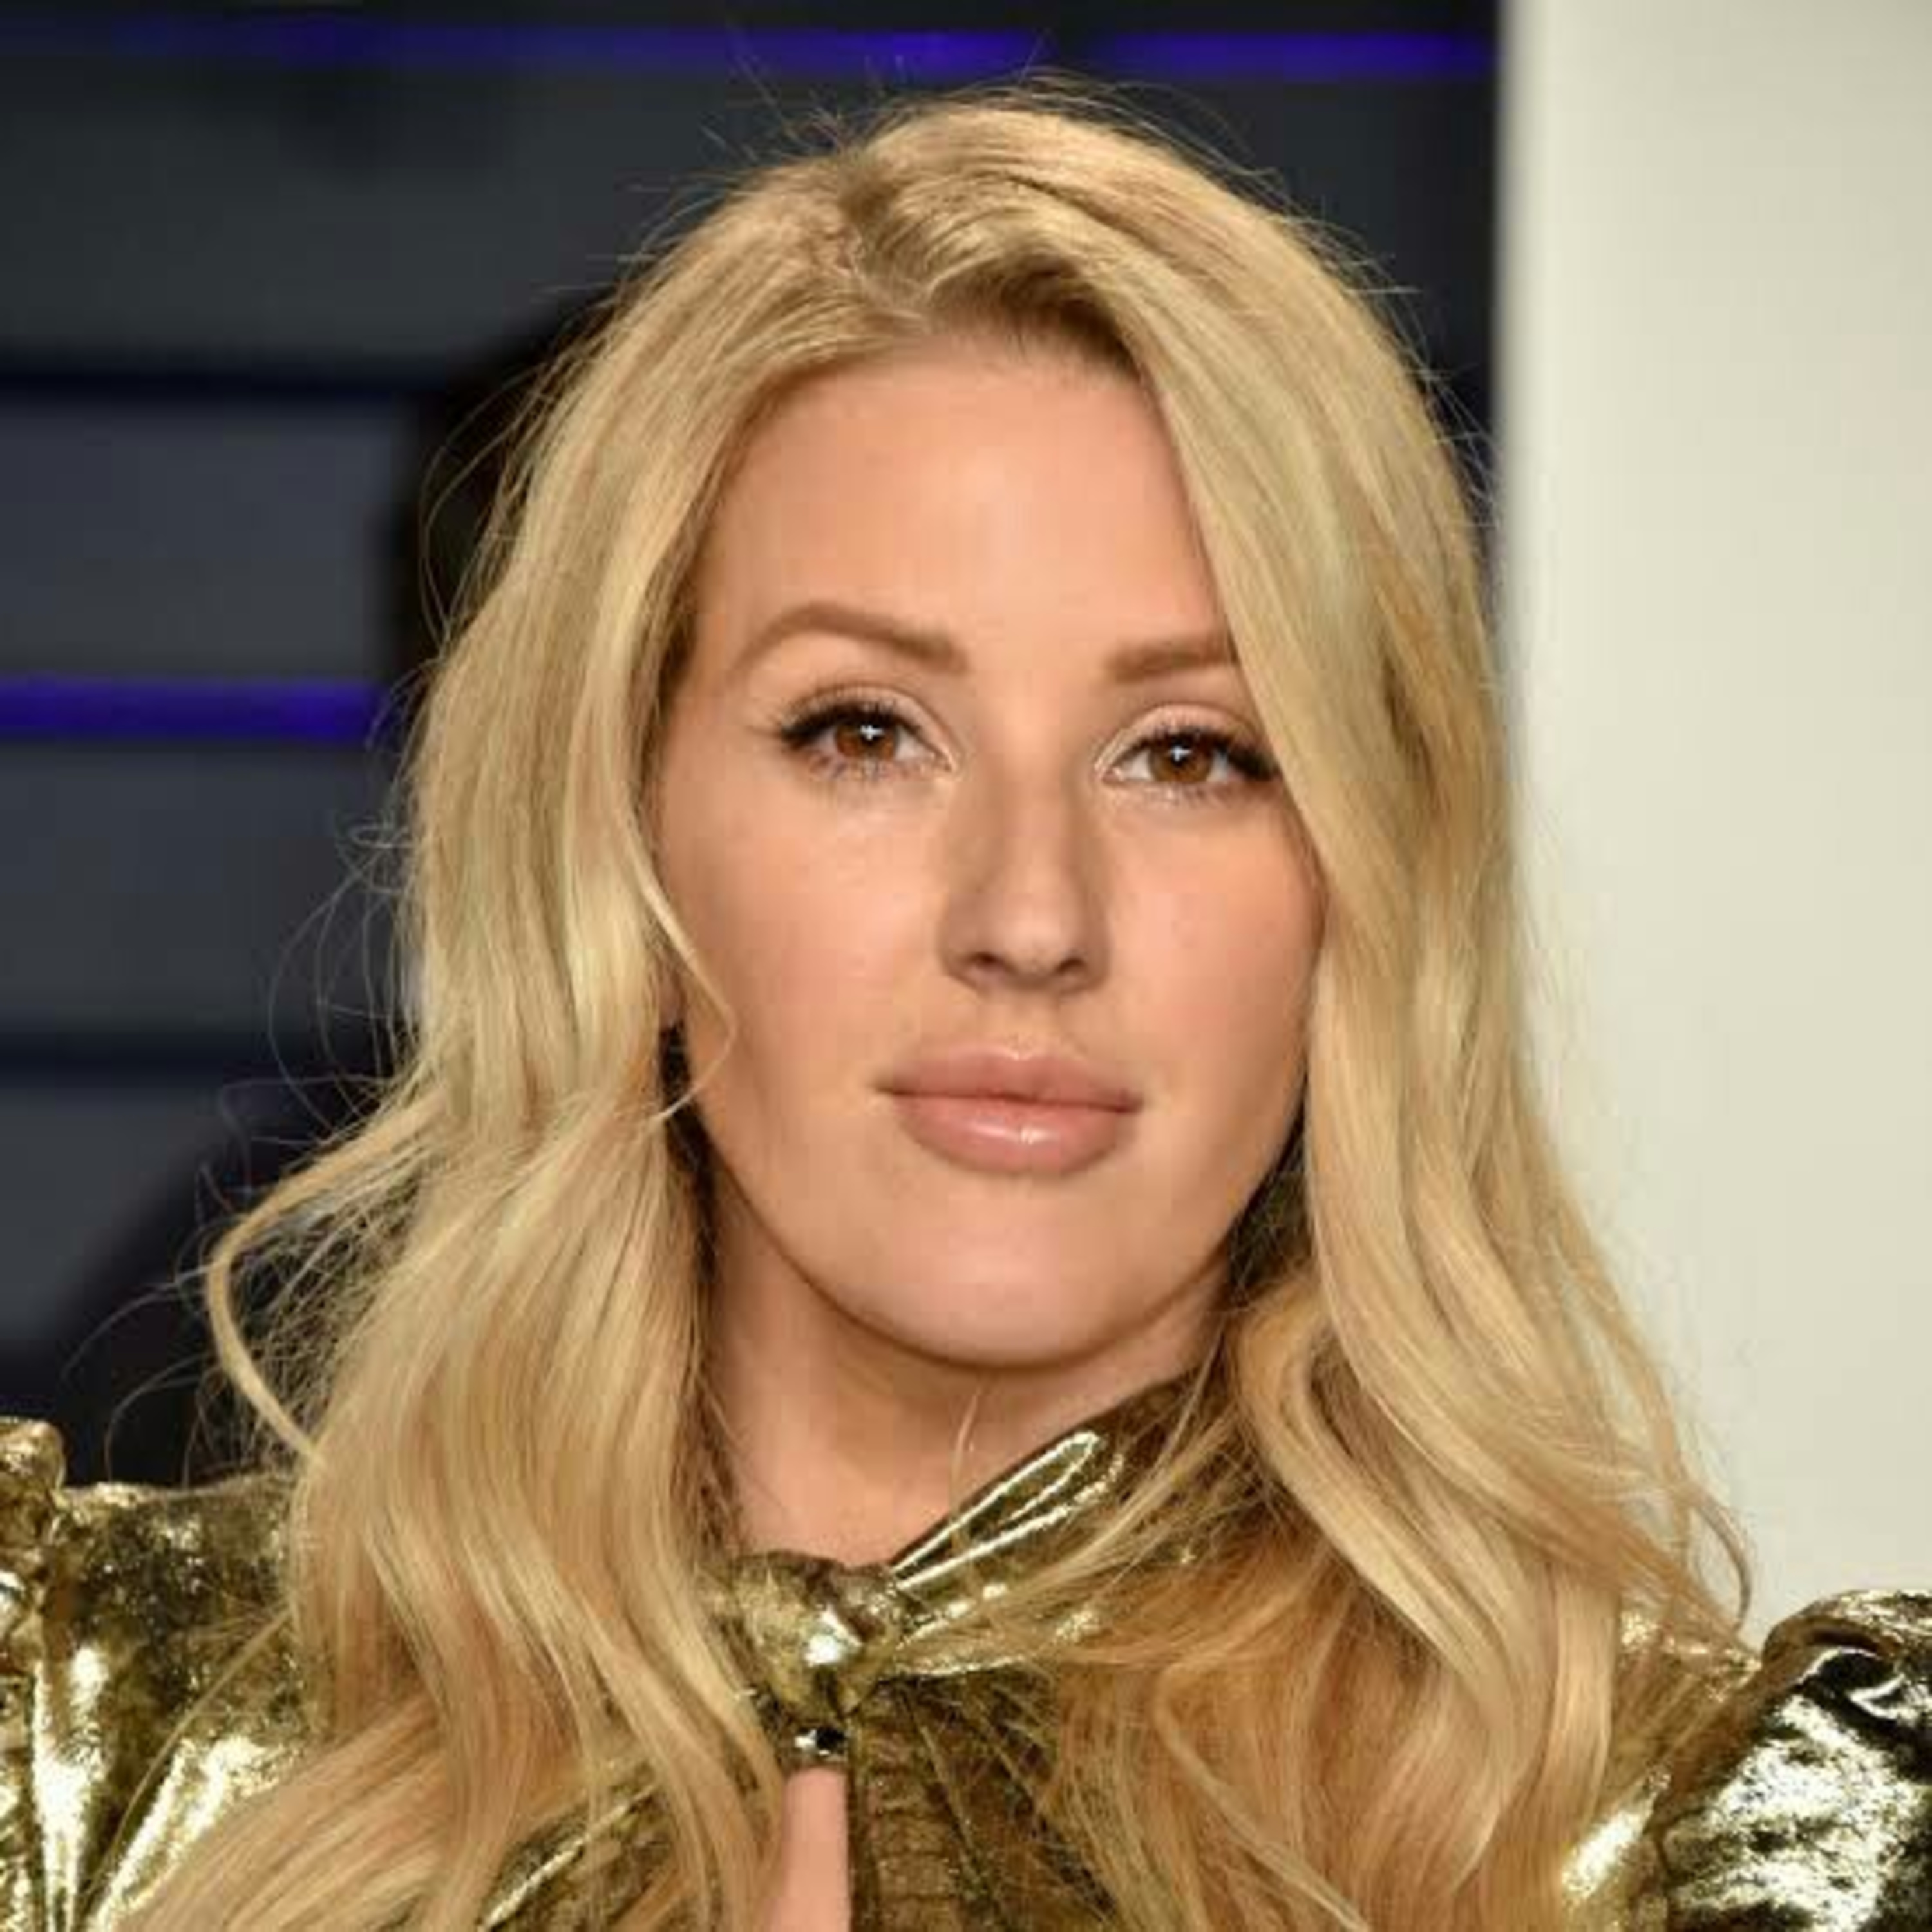 The title is love me like you do and is sing by Ellie Goulding.. Just you listen and enjoy.